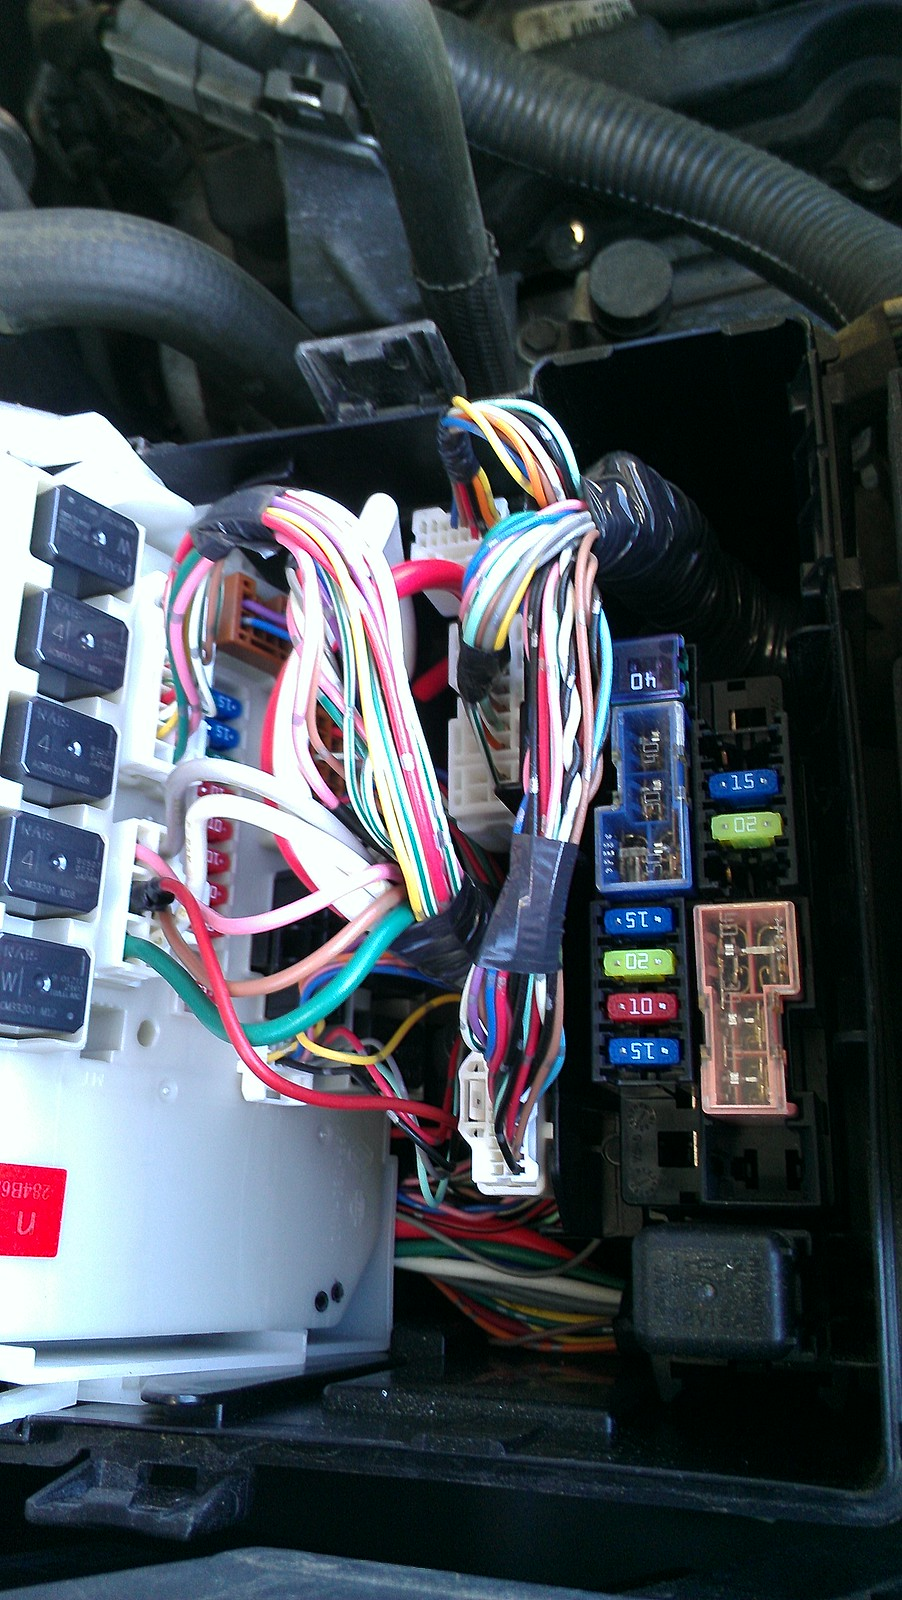 2007 Xterra Rear Power Outlet Replacement